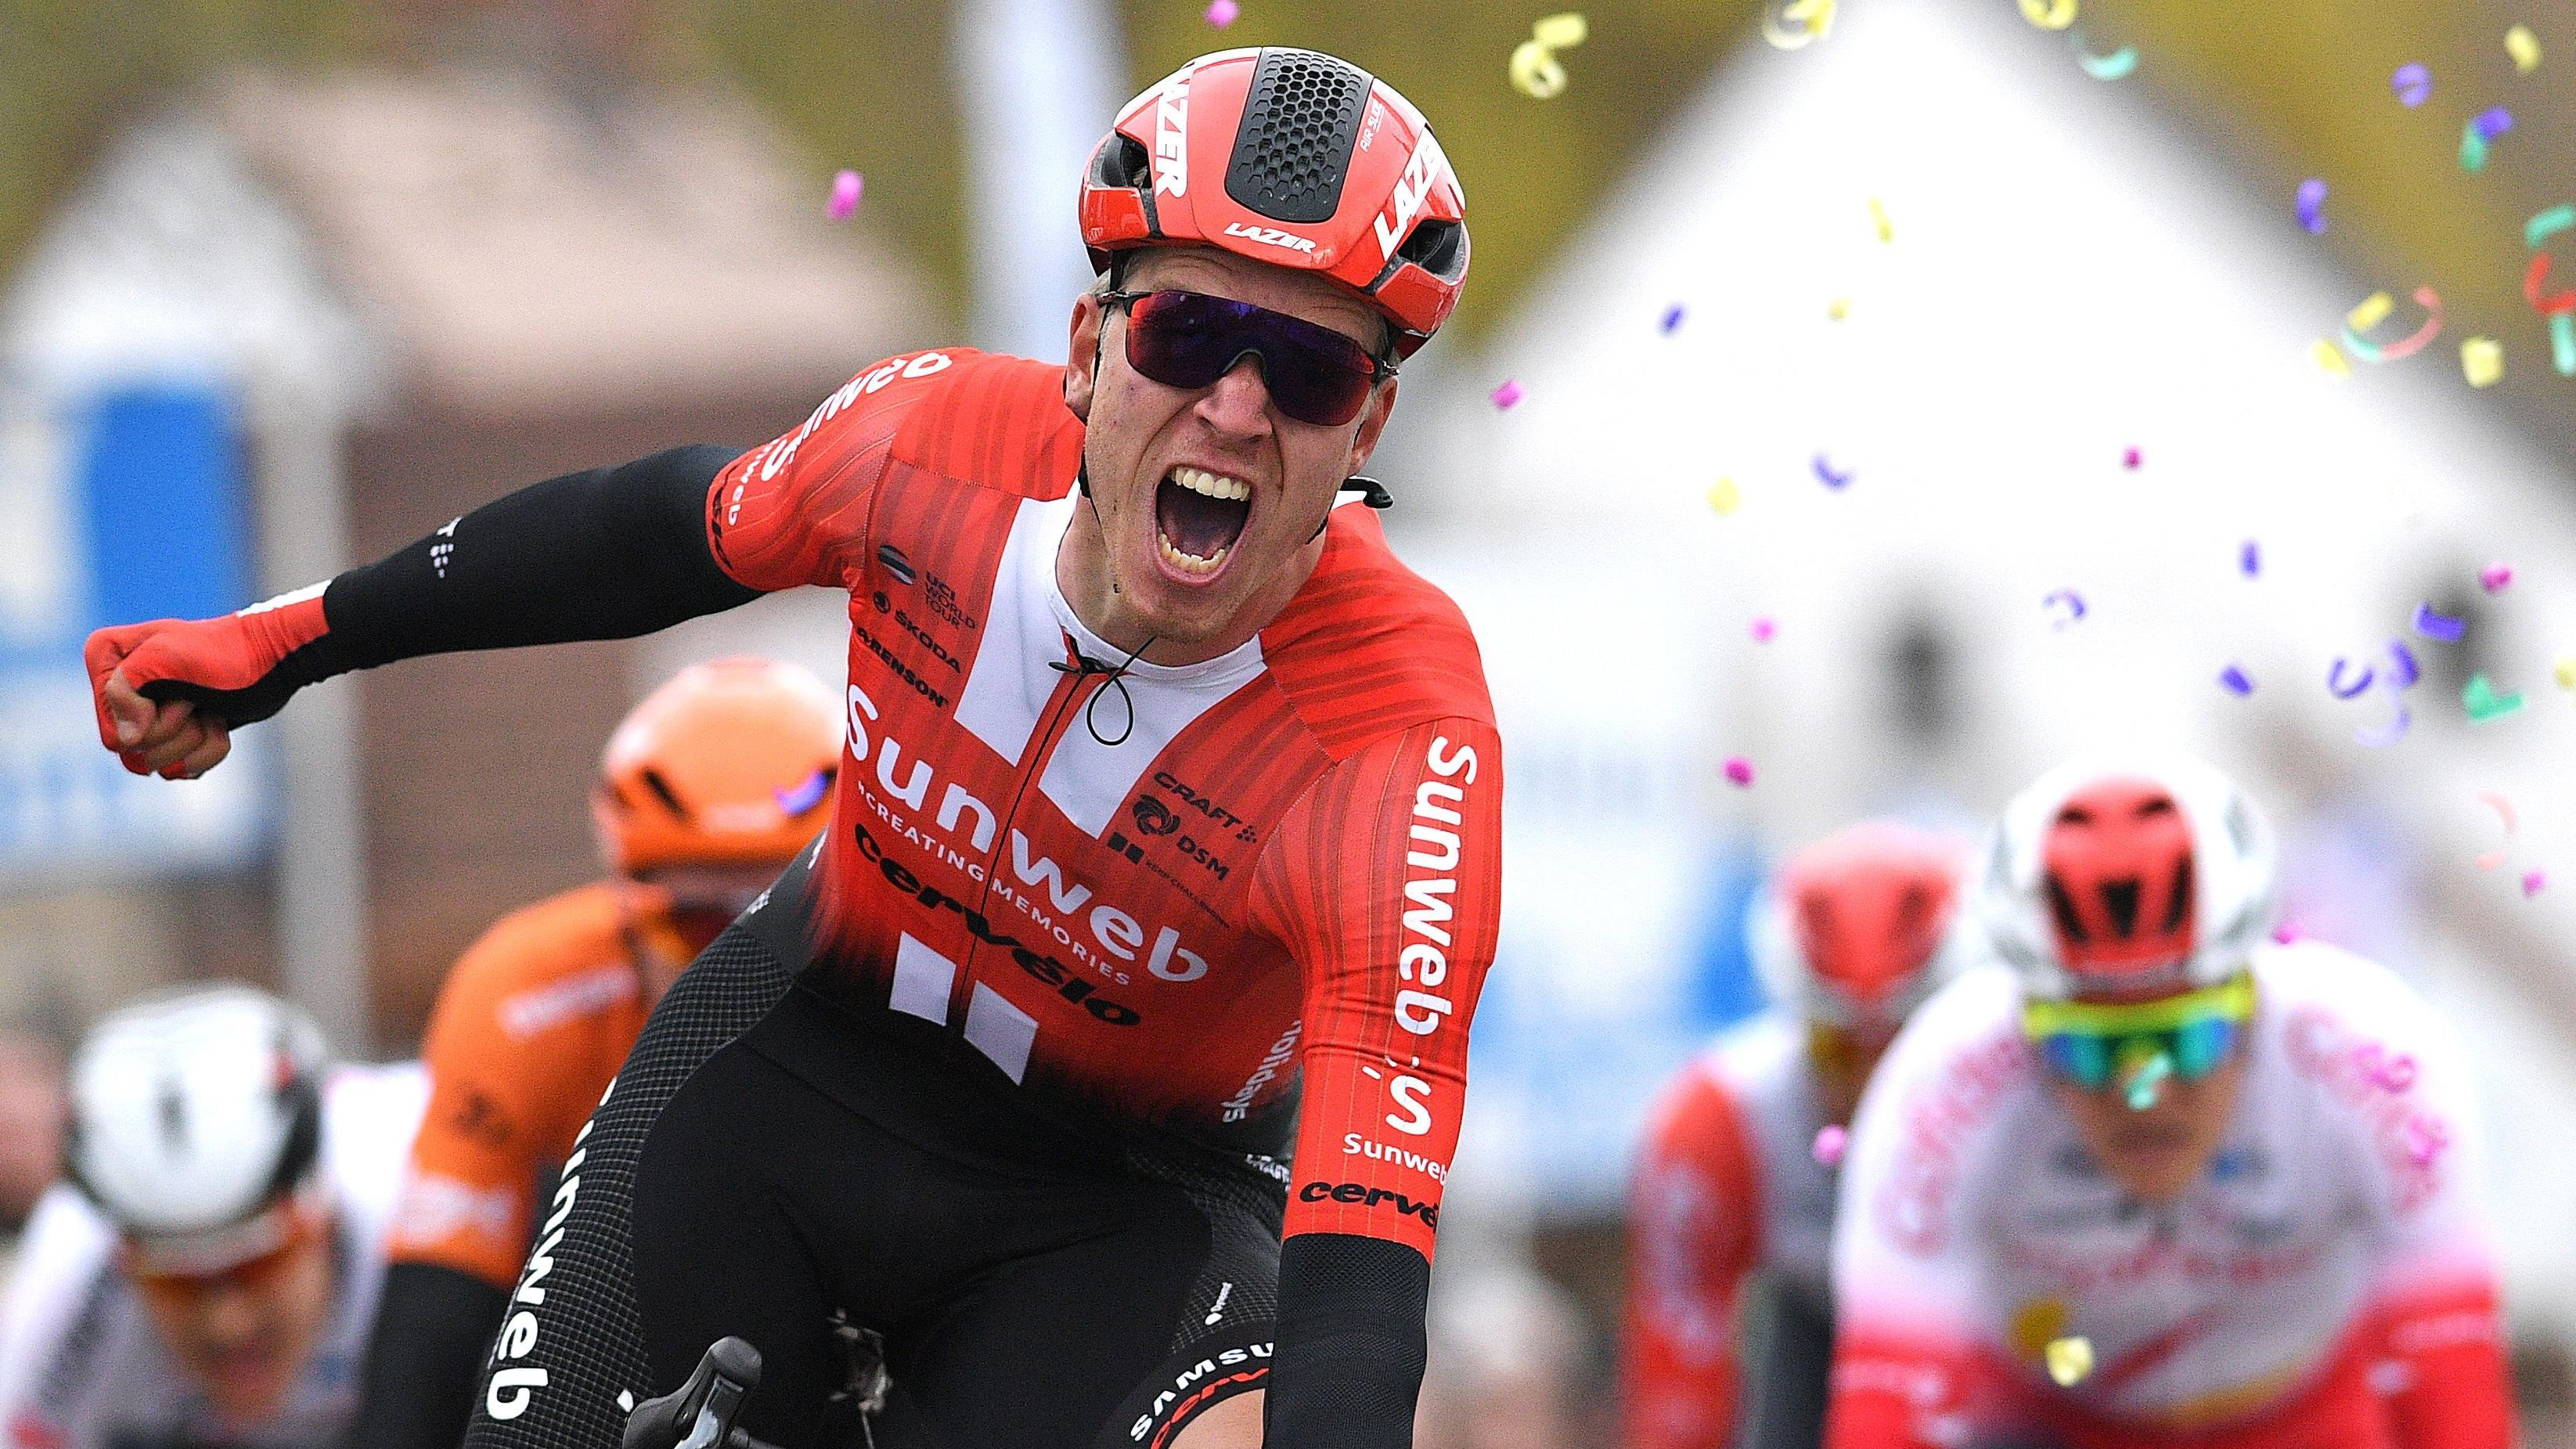 tour de france stage 9 betting preview on betfair